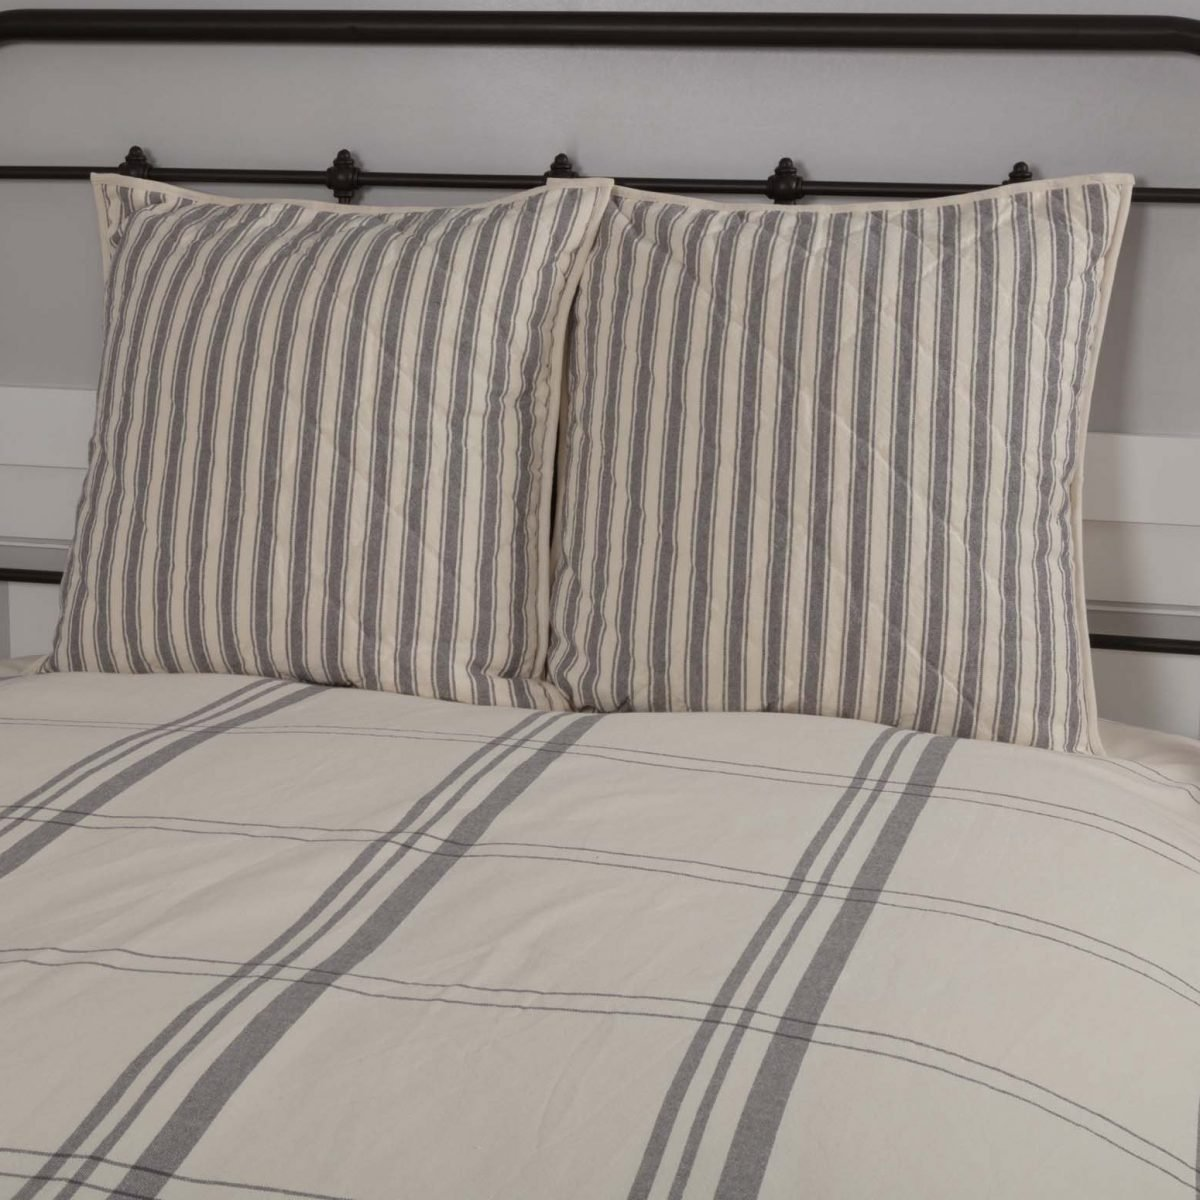 Market Place Gray Quilted Euro Sham Piper Classics